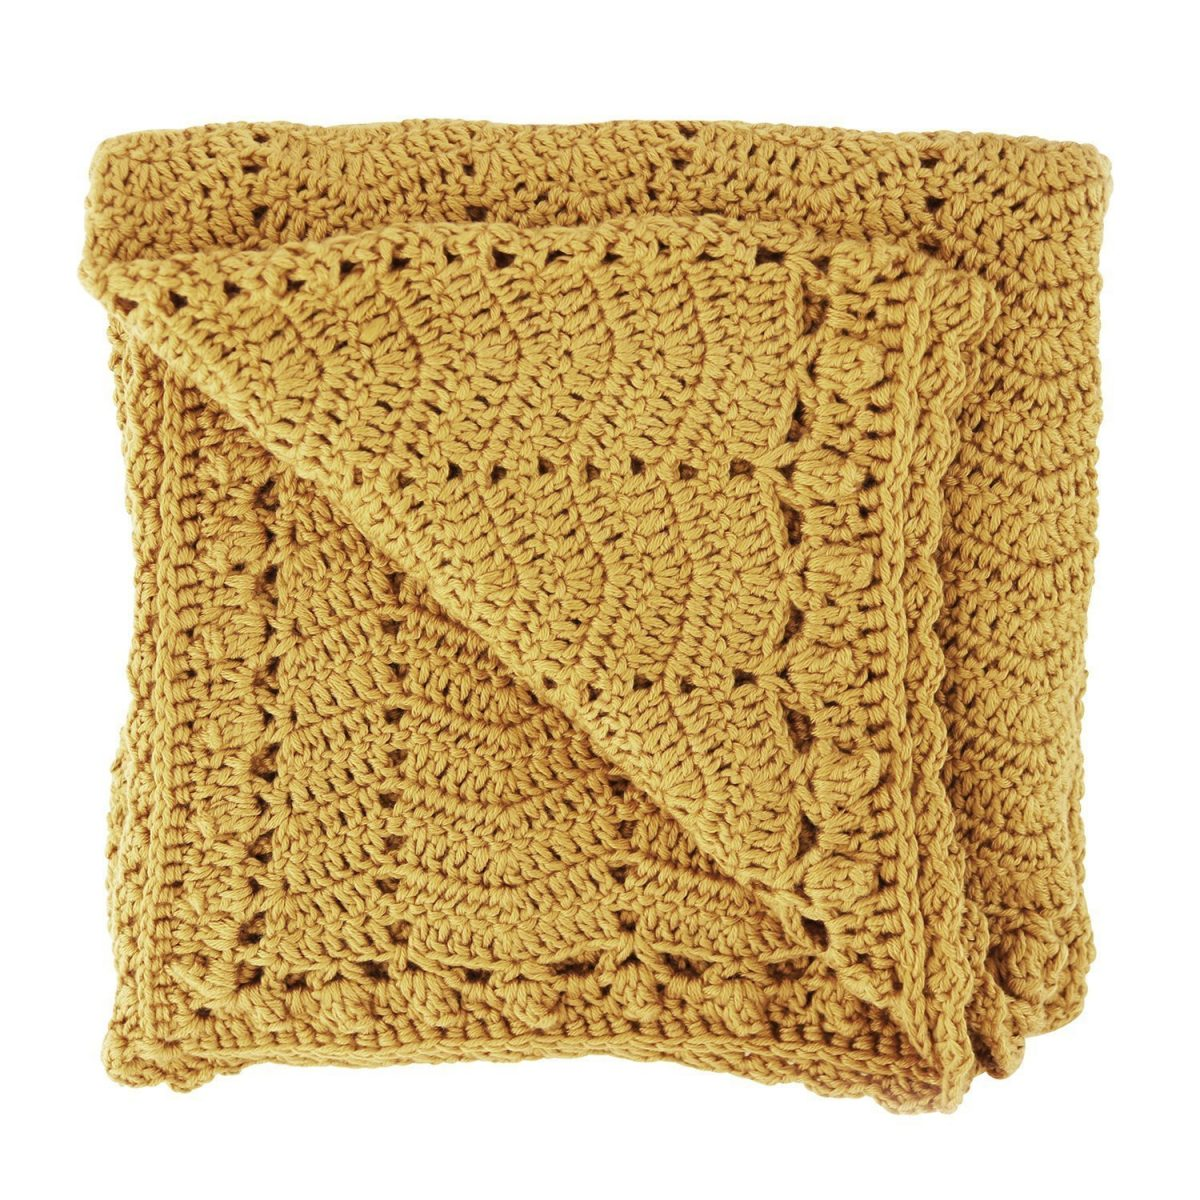 Crocheted Baby Blanket Turmeric